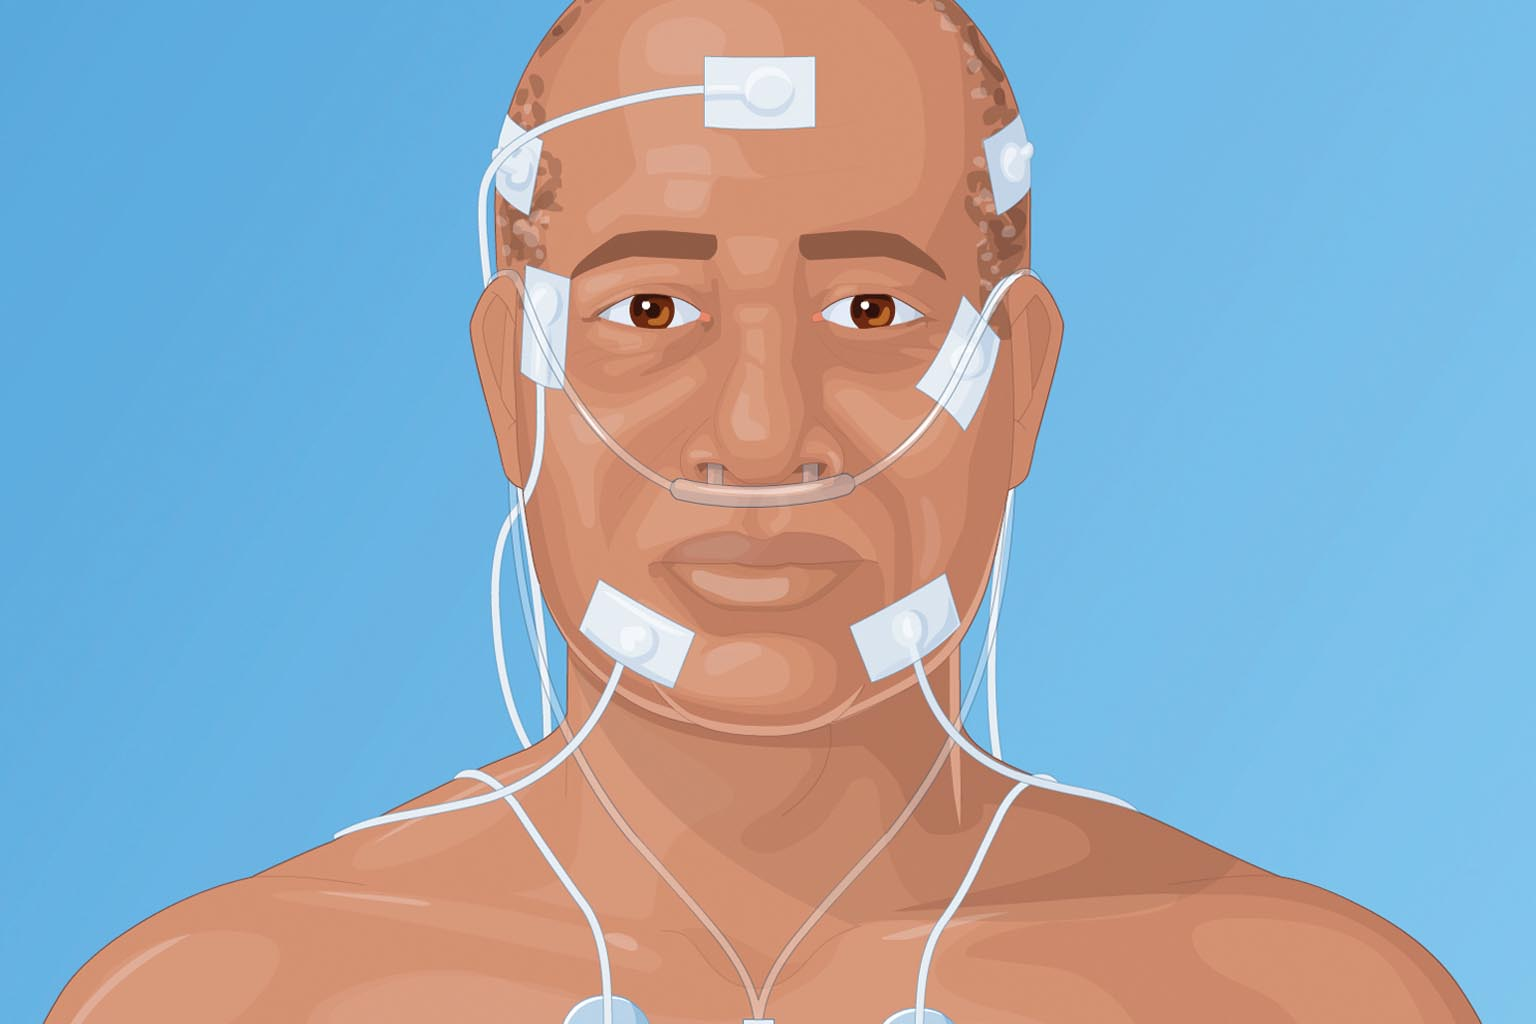 graphic of person with test leads on head and chest